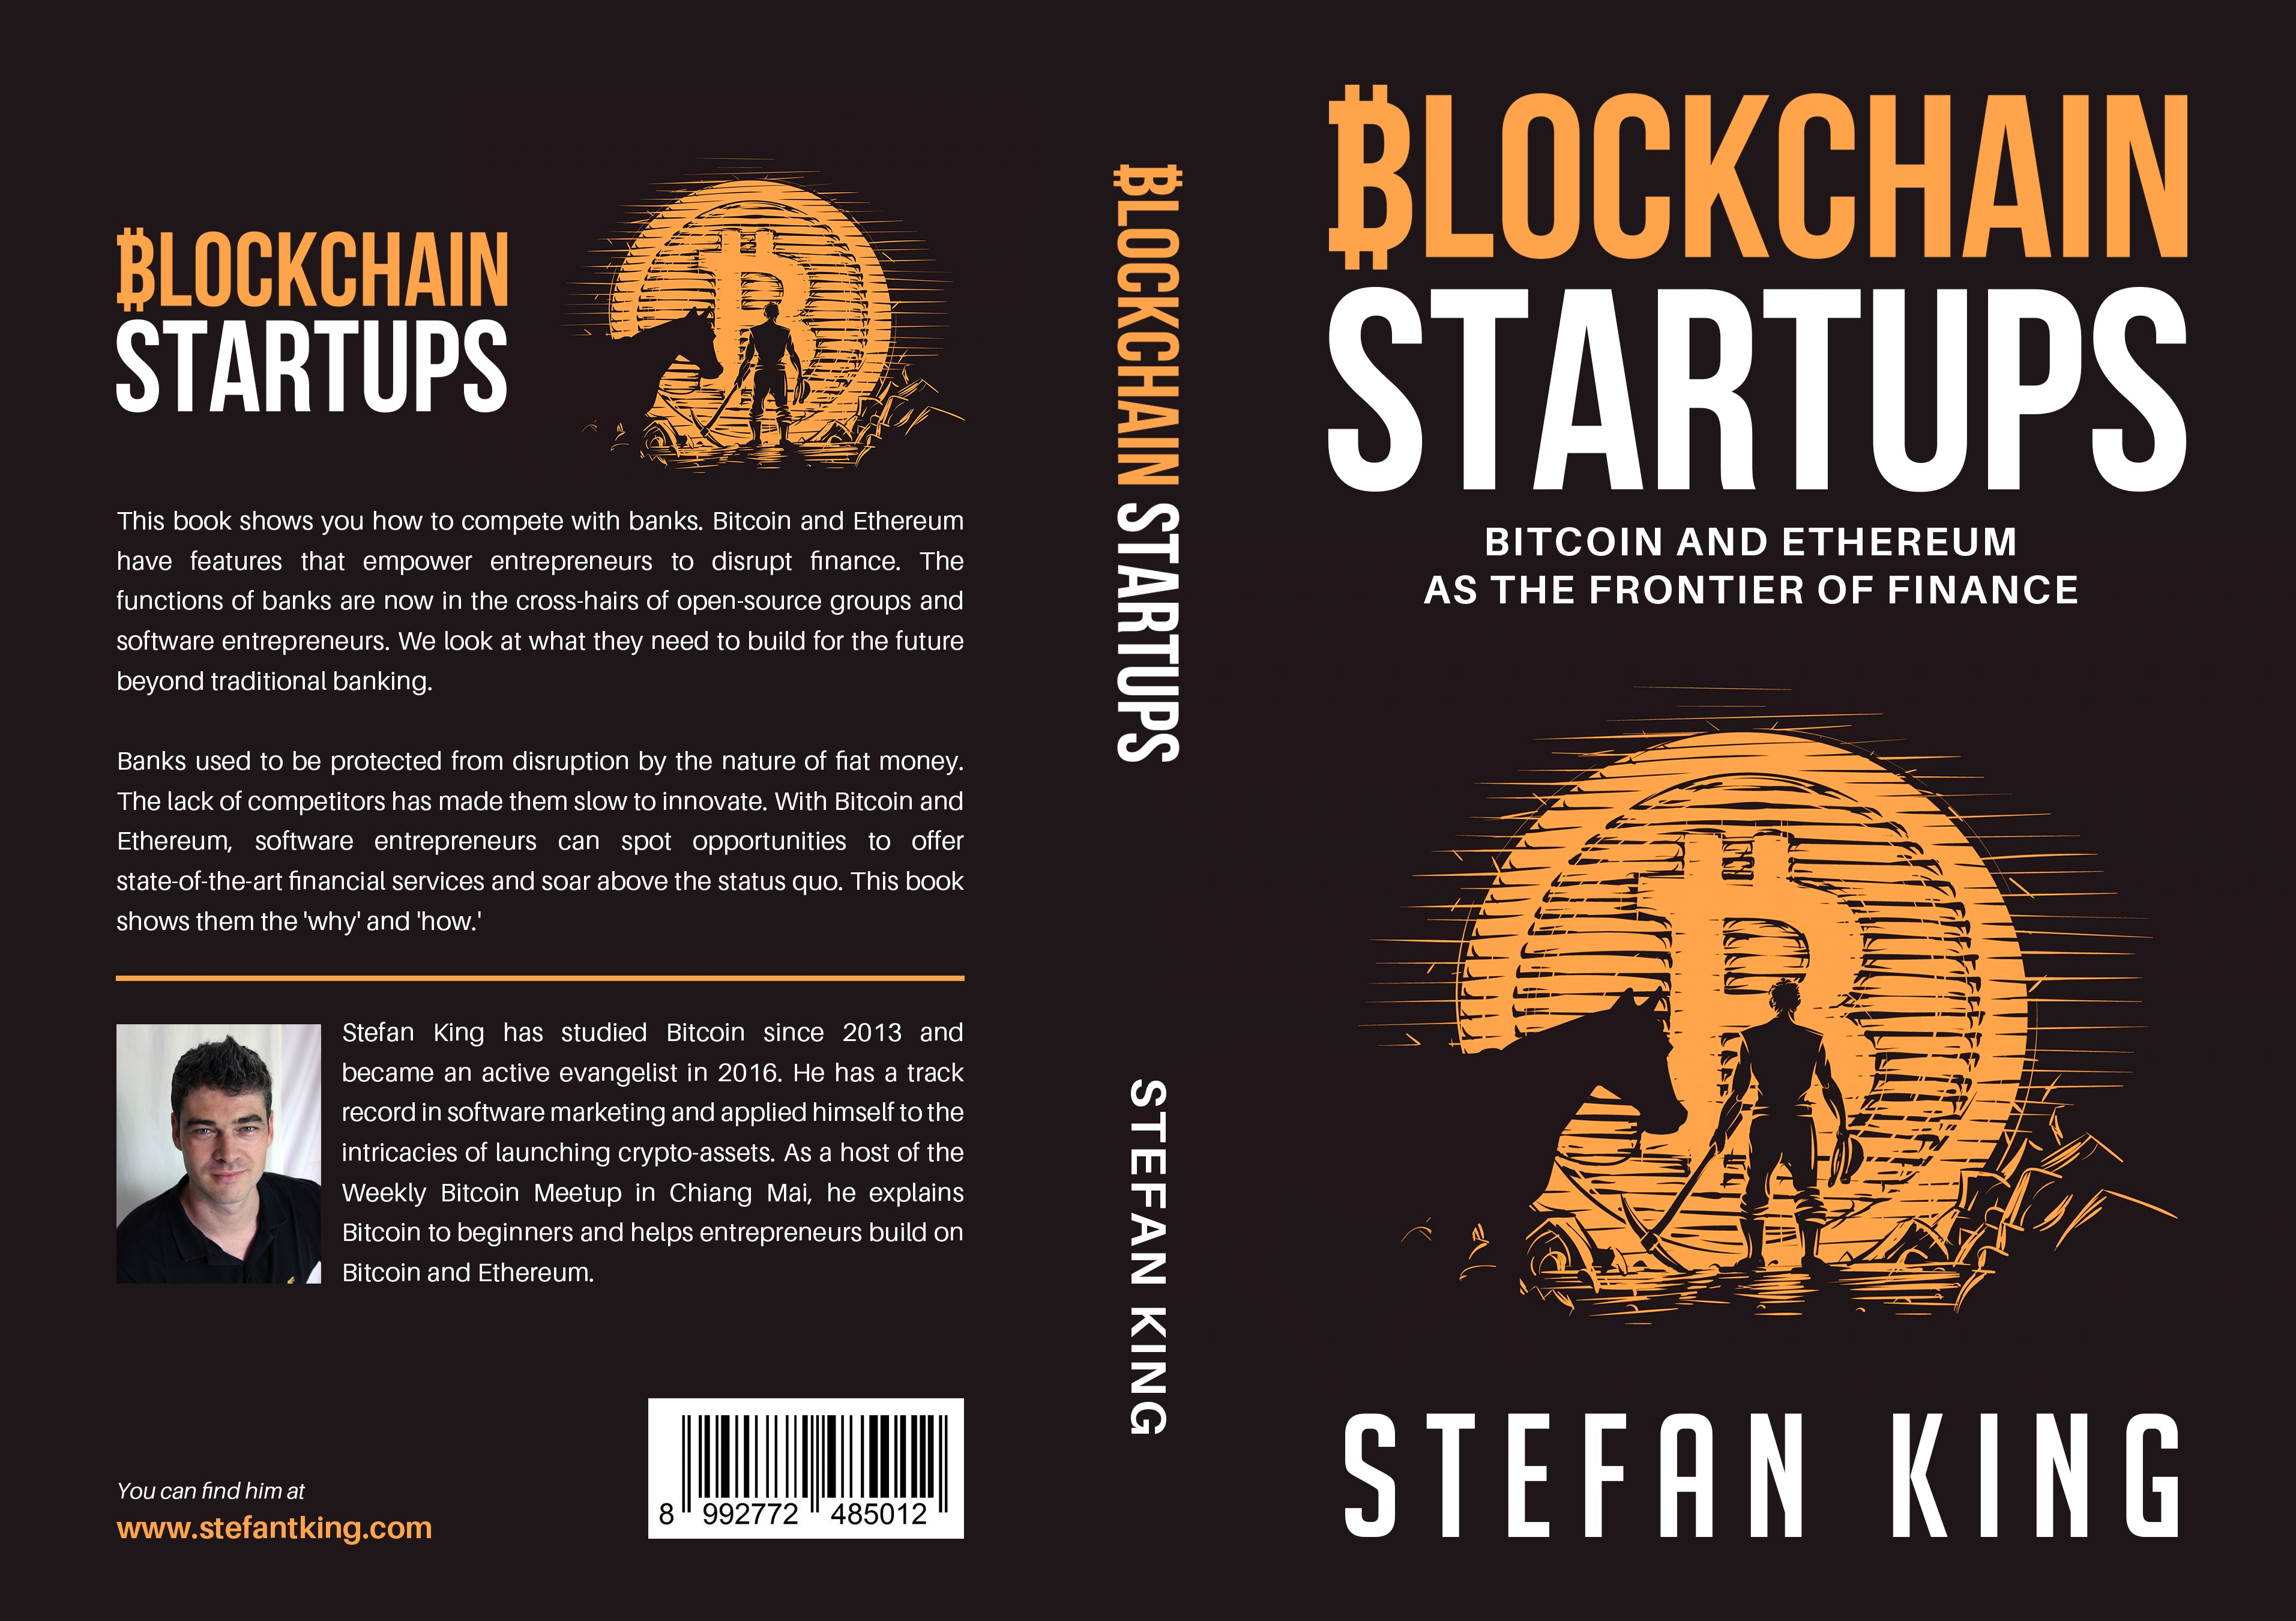 Book cover with bitcoins and a 'Wild West' theme